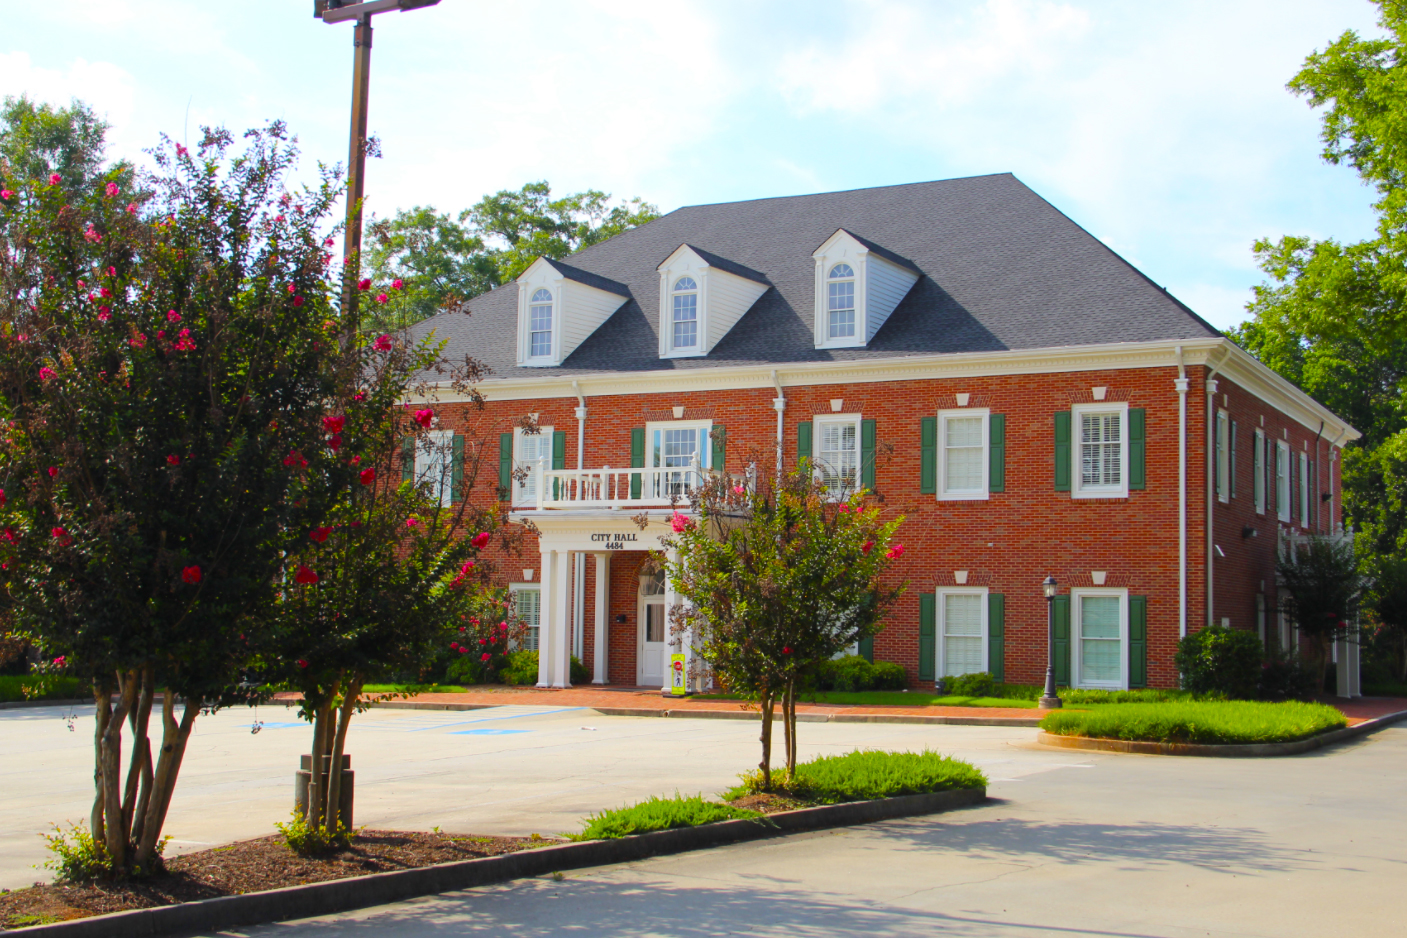 New homes are headed to Silver Springs Village in Powder Springs, GA.